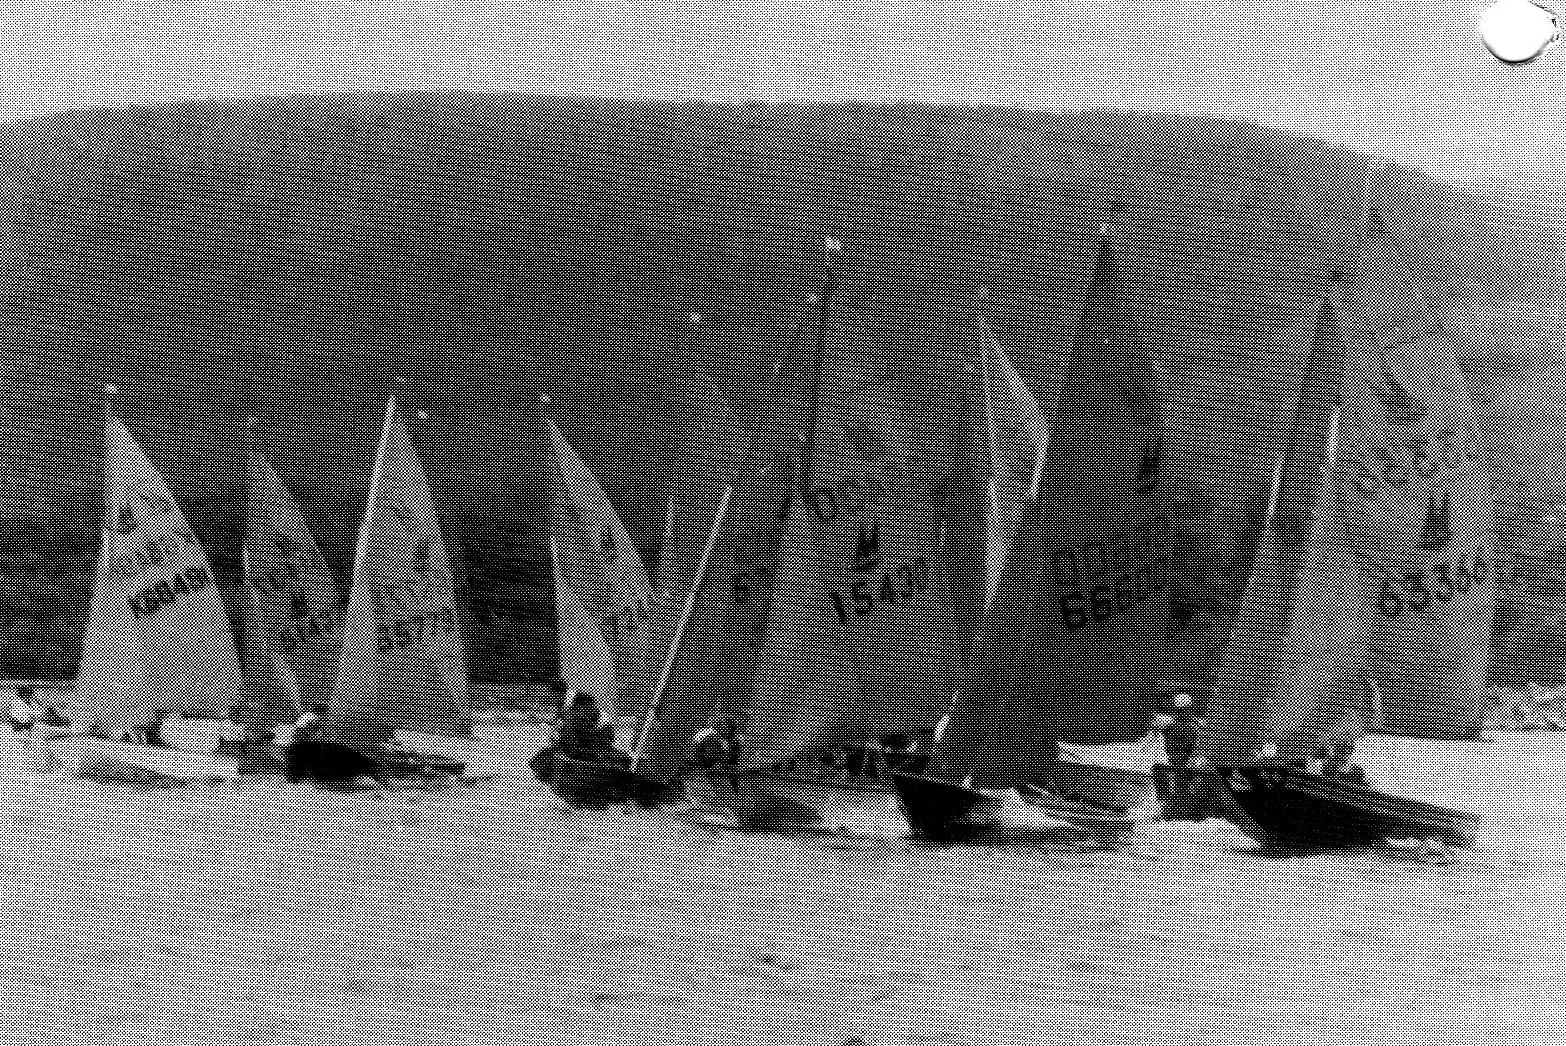 Mirror dinghies starting a race sailing towards the camera